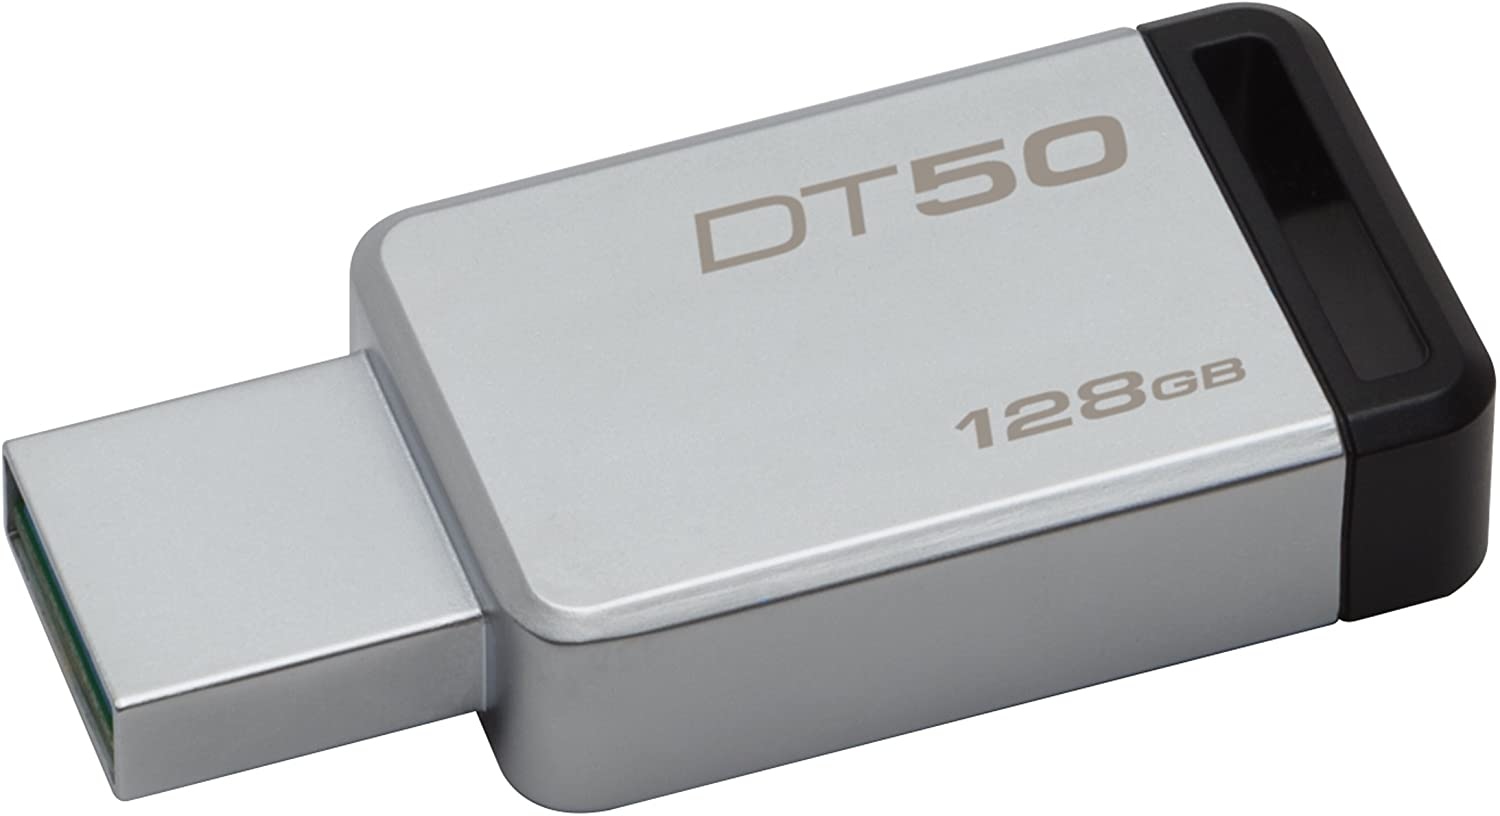 Pendrive 128gb usb 3.0